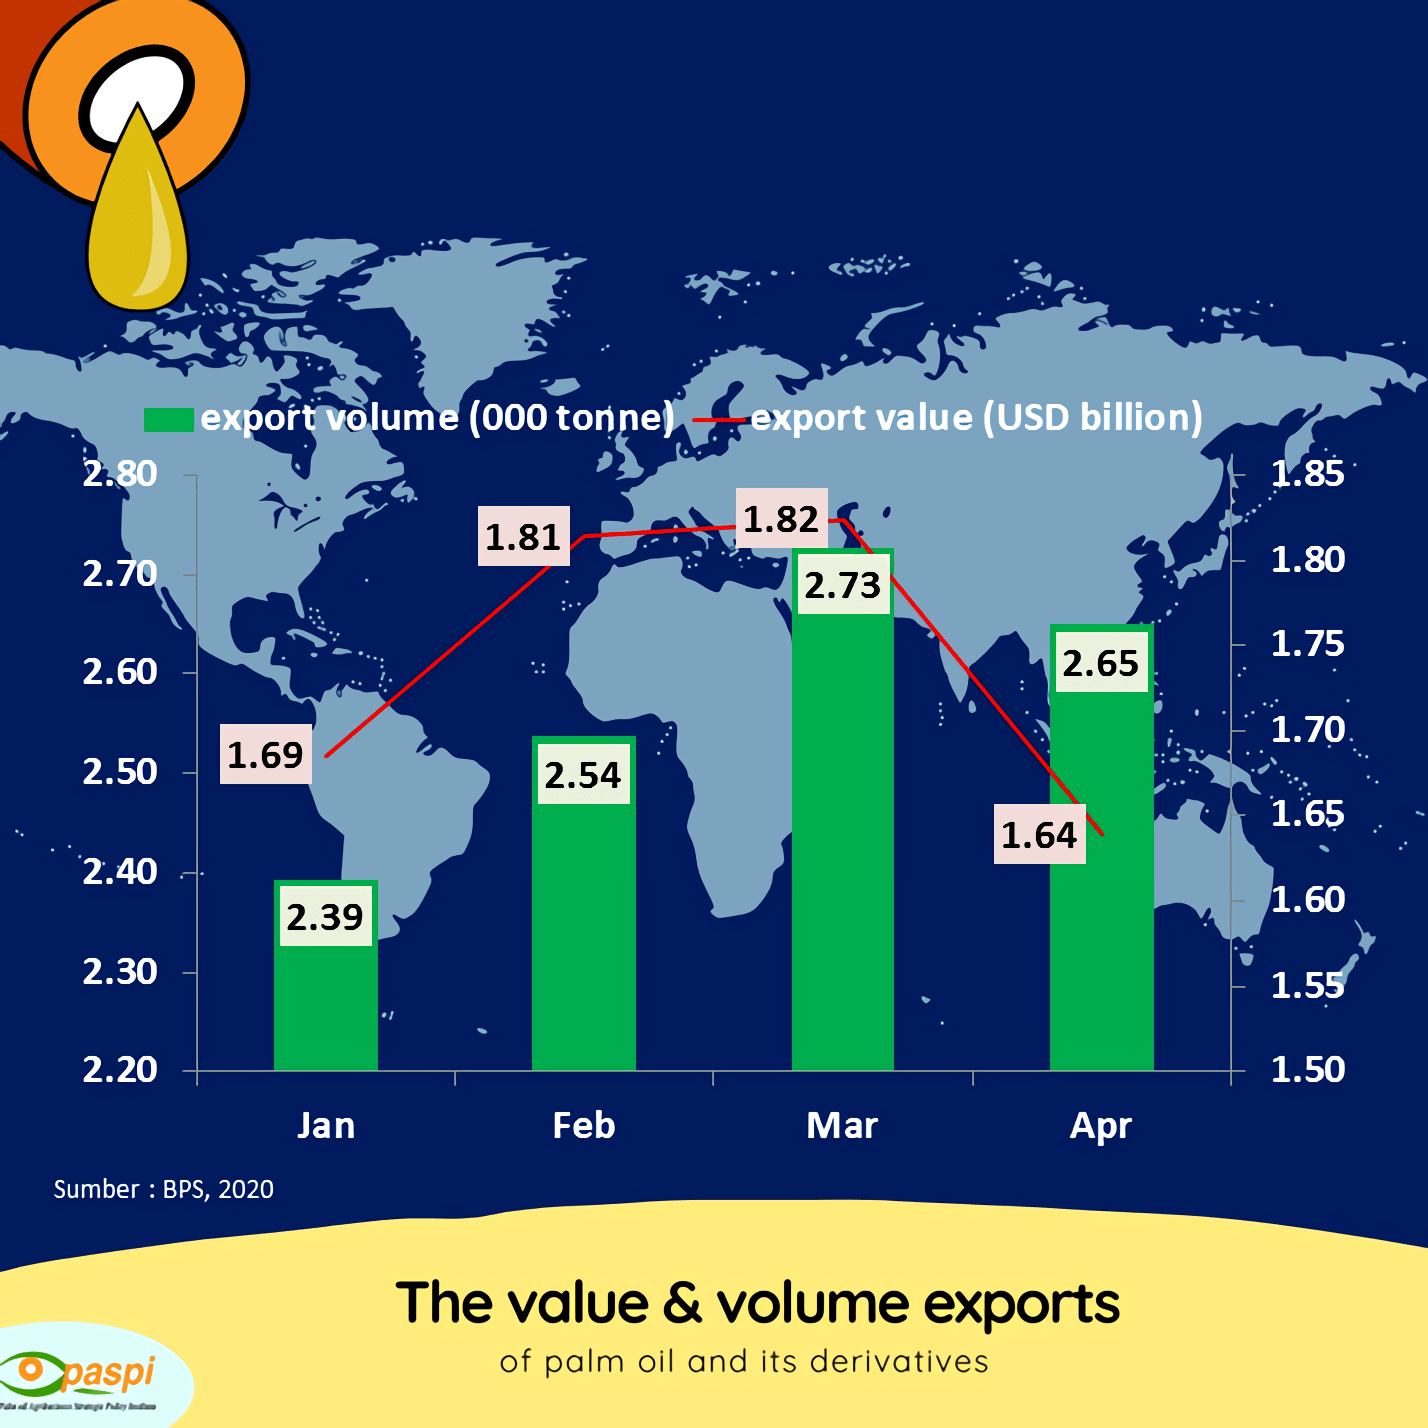 Palm oil value & volume exports